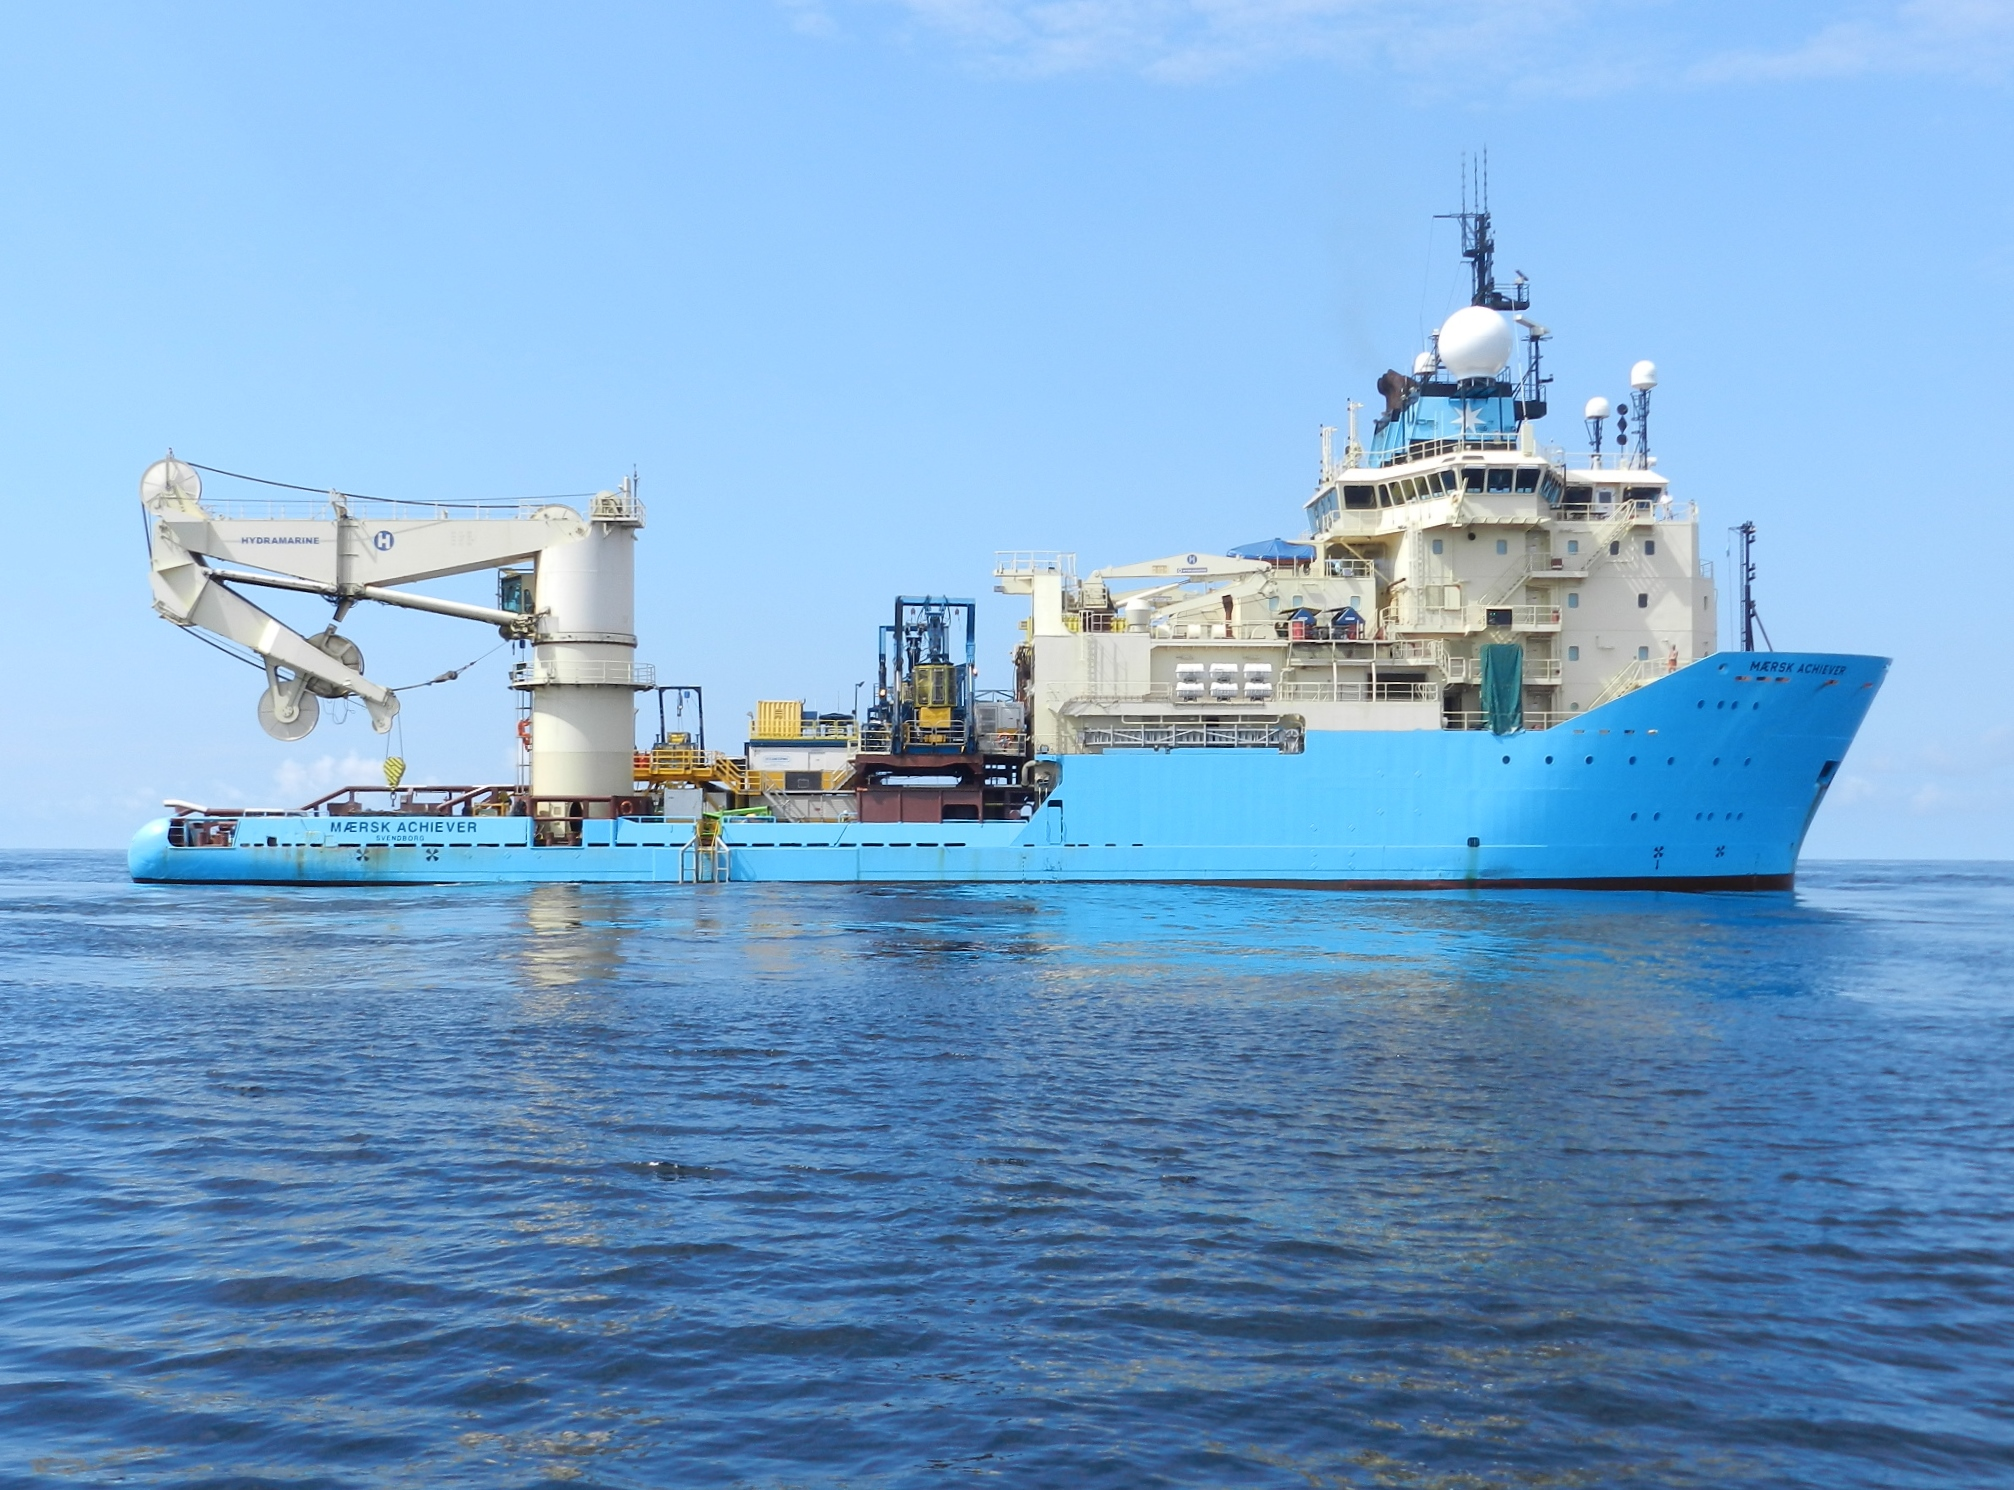 Maersk Supply Service Wins Integrated Solutions For Shell's Project In Brazil